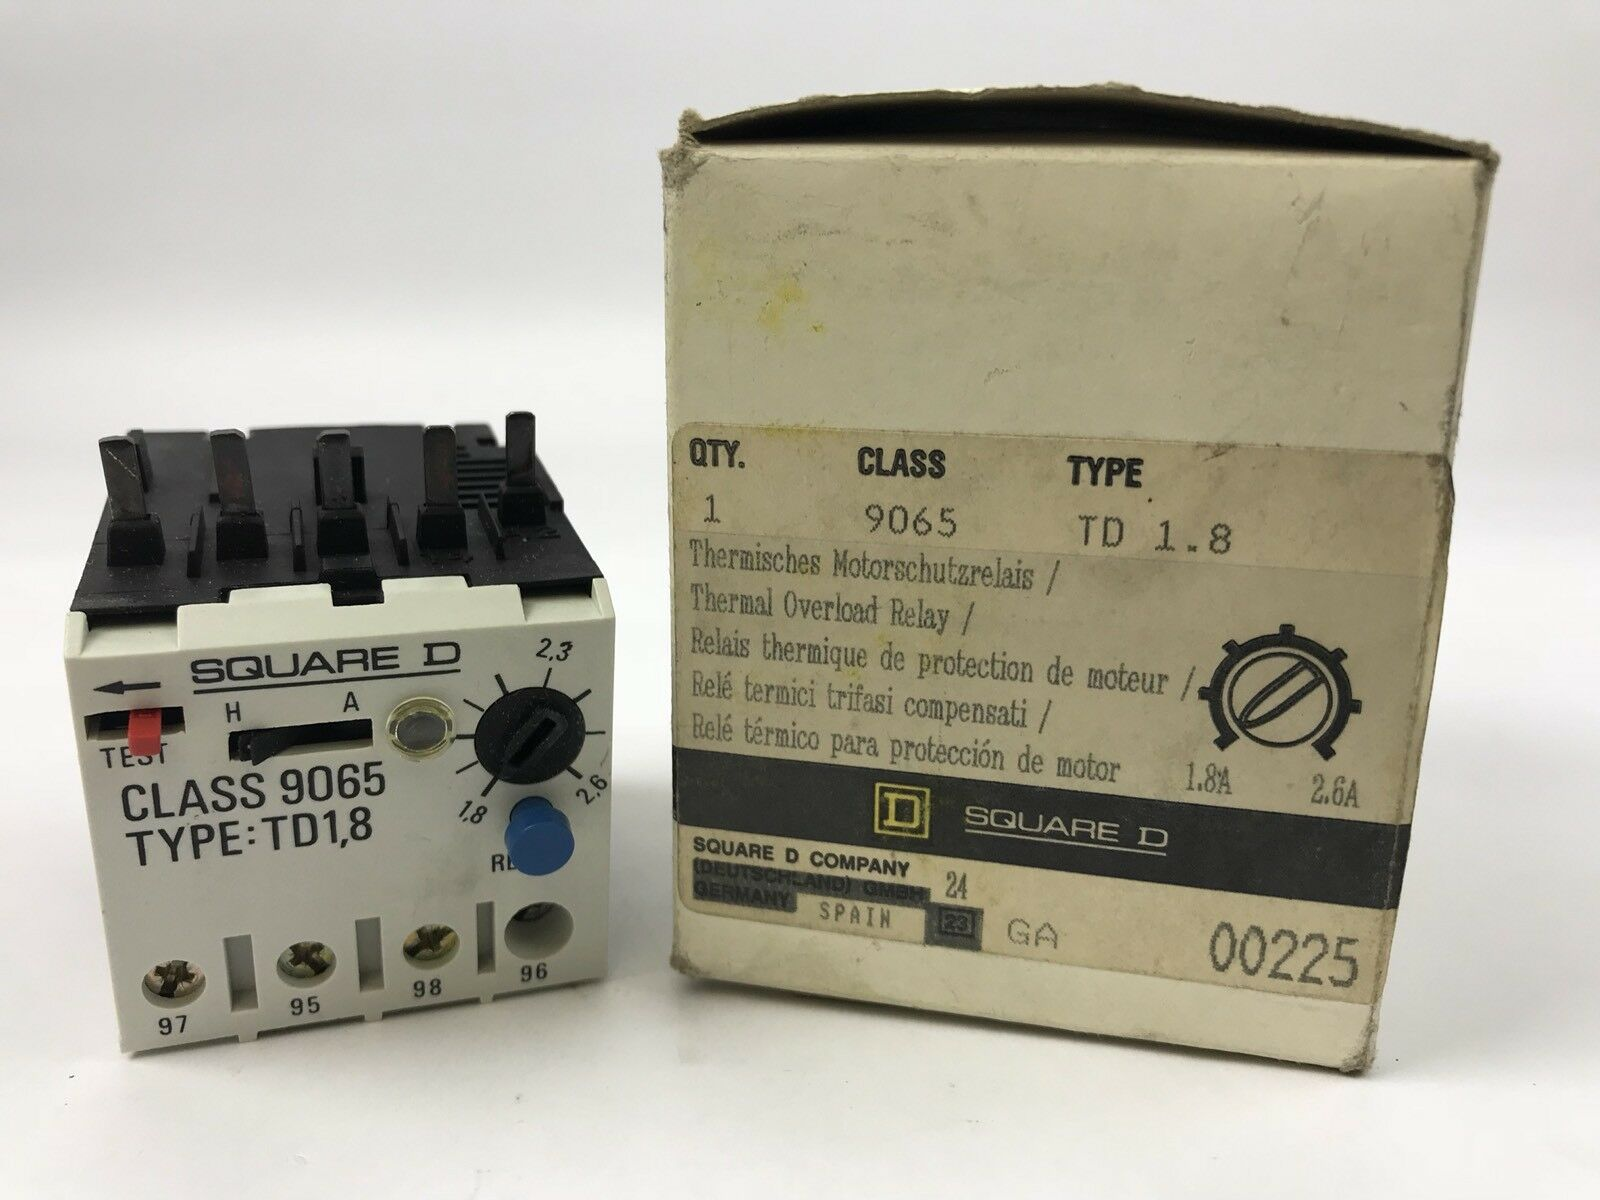 Square D 9065 TD 1.8 New In Original Box Thermal Overload Relay 1.8A-2.6A